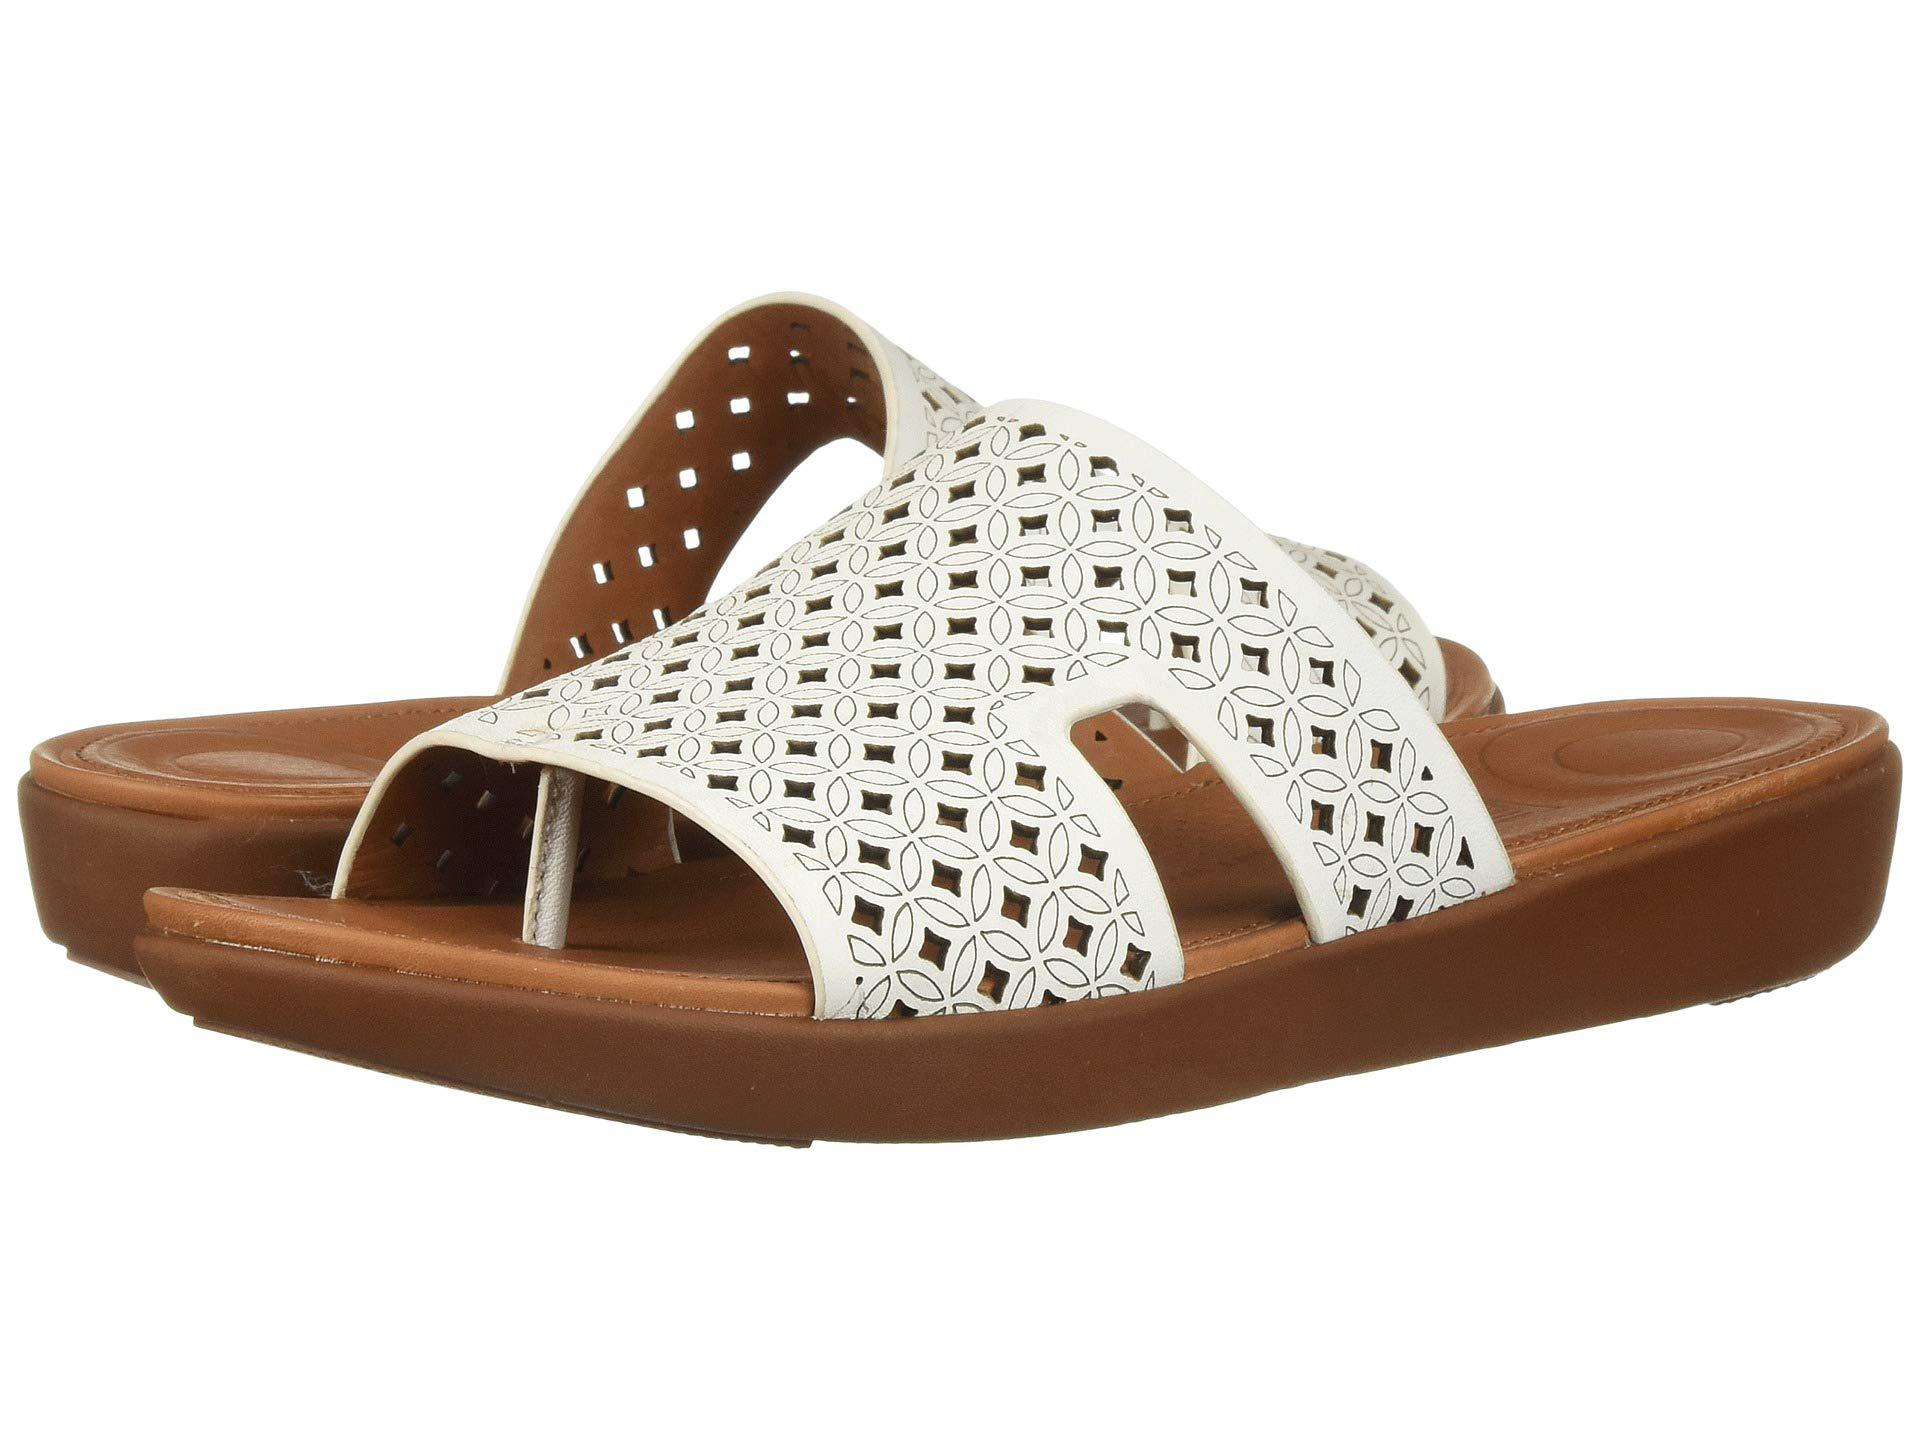 c1f09f4e5 Fitflop - Brown H-bar Slide Sandals - Latticed Leather - Lyst. View  fullscreen